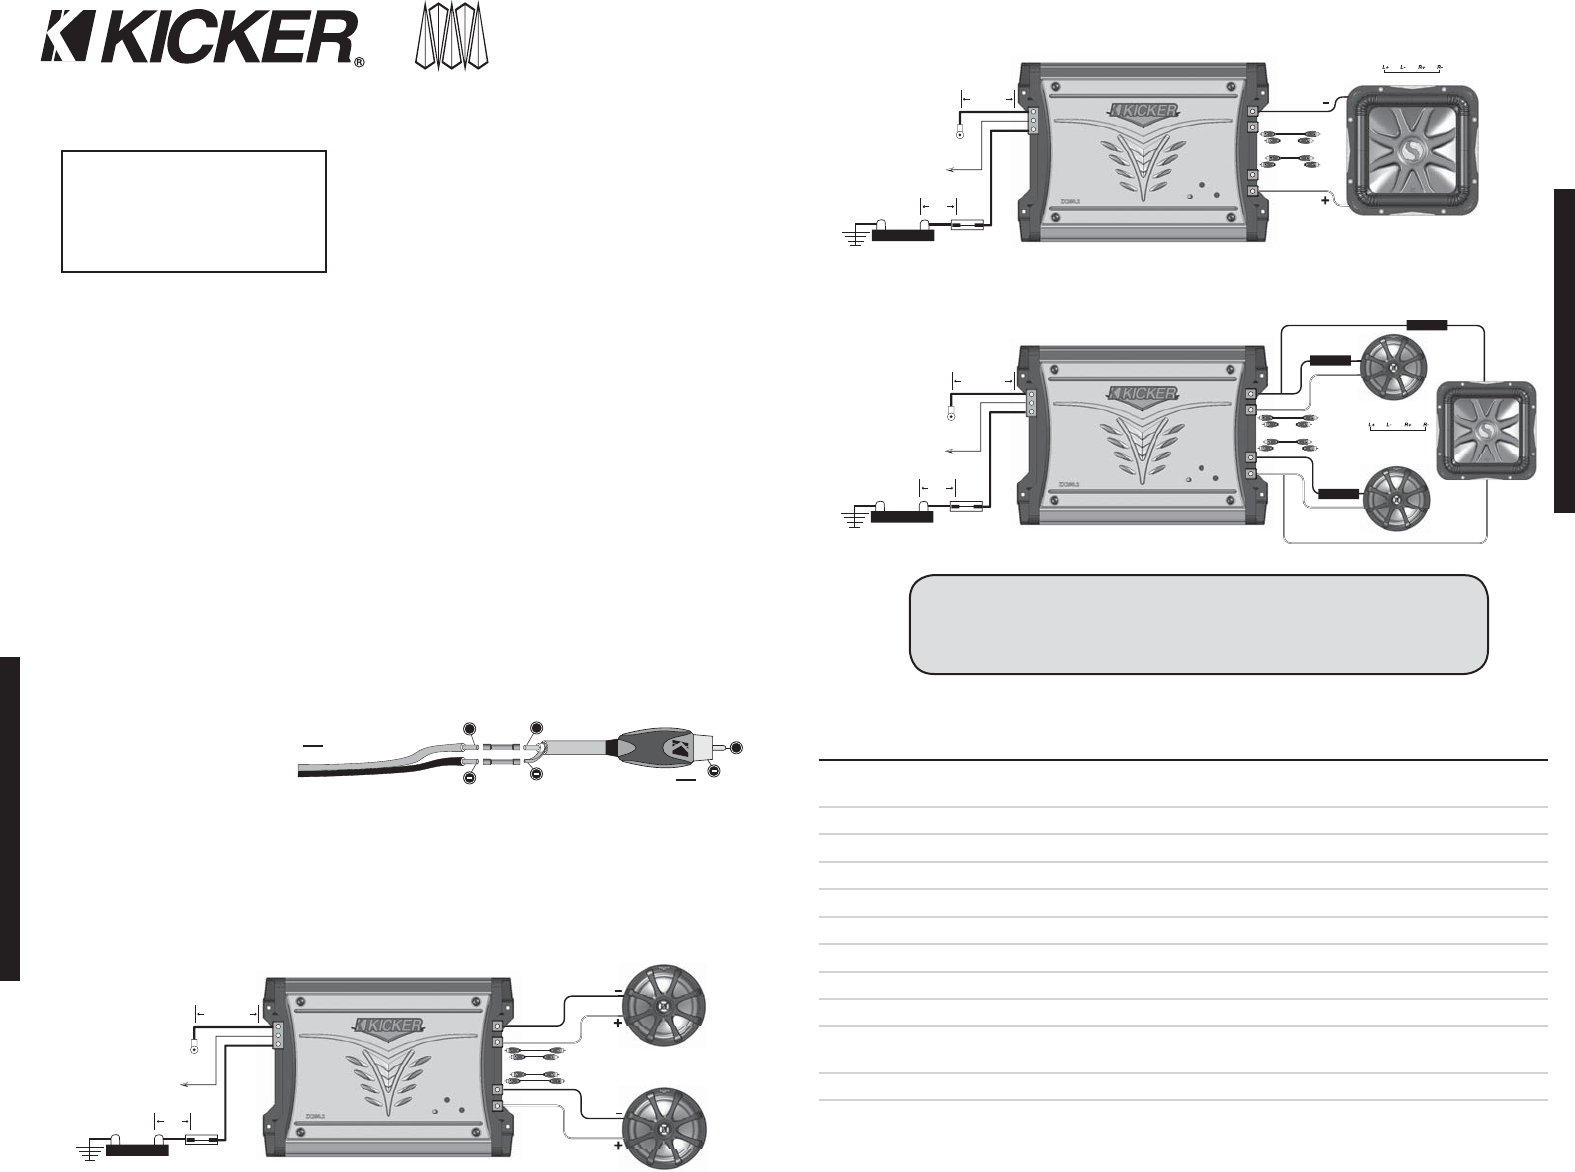 af87c86e 4688 4db4 9be0 e408bf8776e5 bg2 page 2 of kicker car amplifier zx200 2 user guide manualsonline com Kicker 6 Channel Amp at gsmportal.co